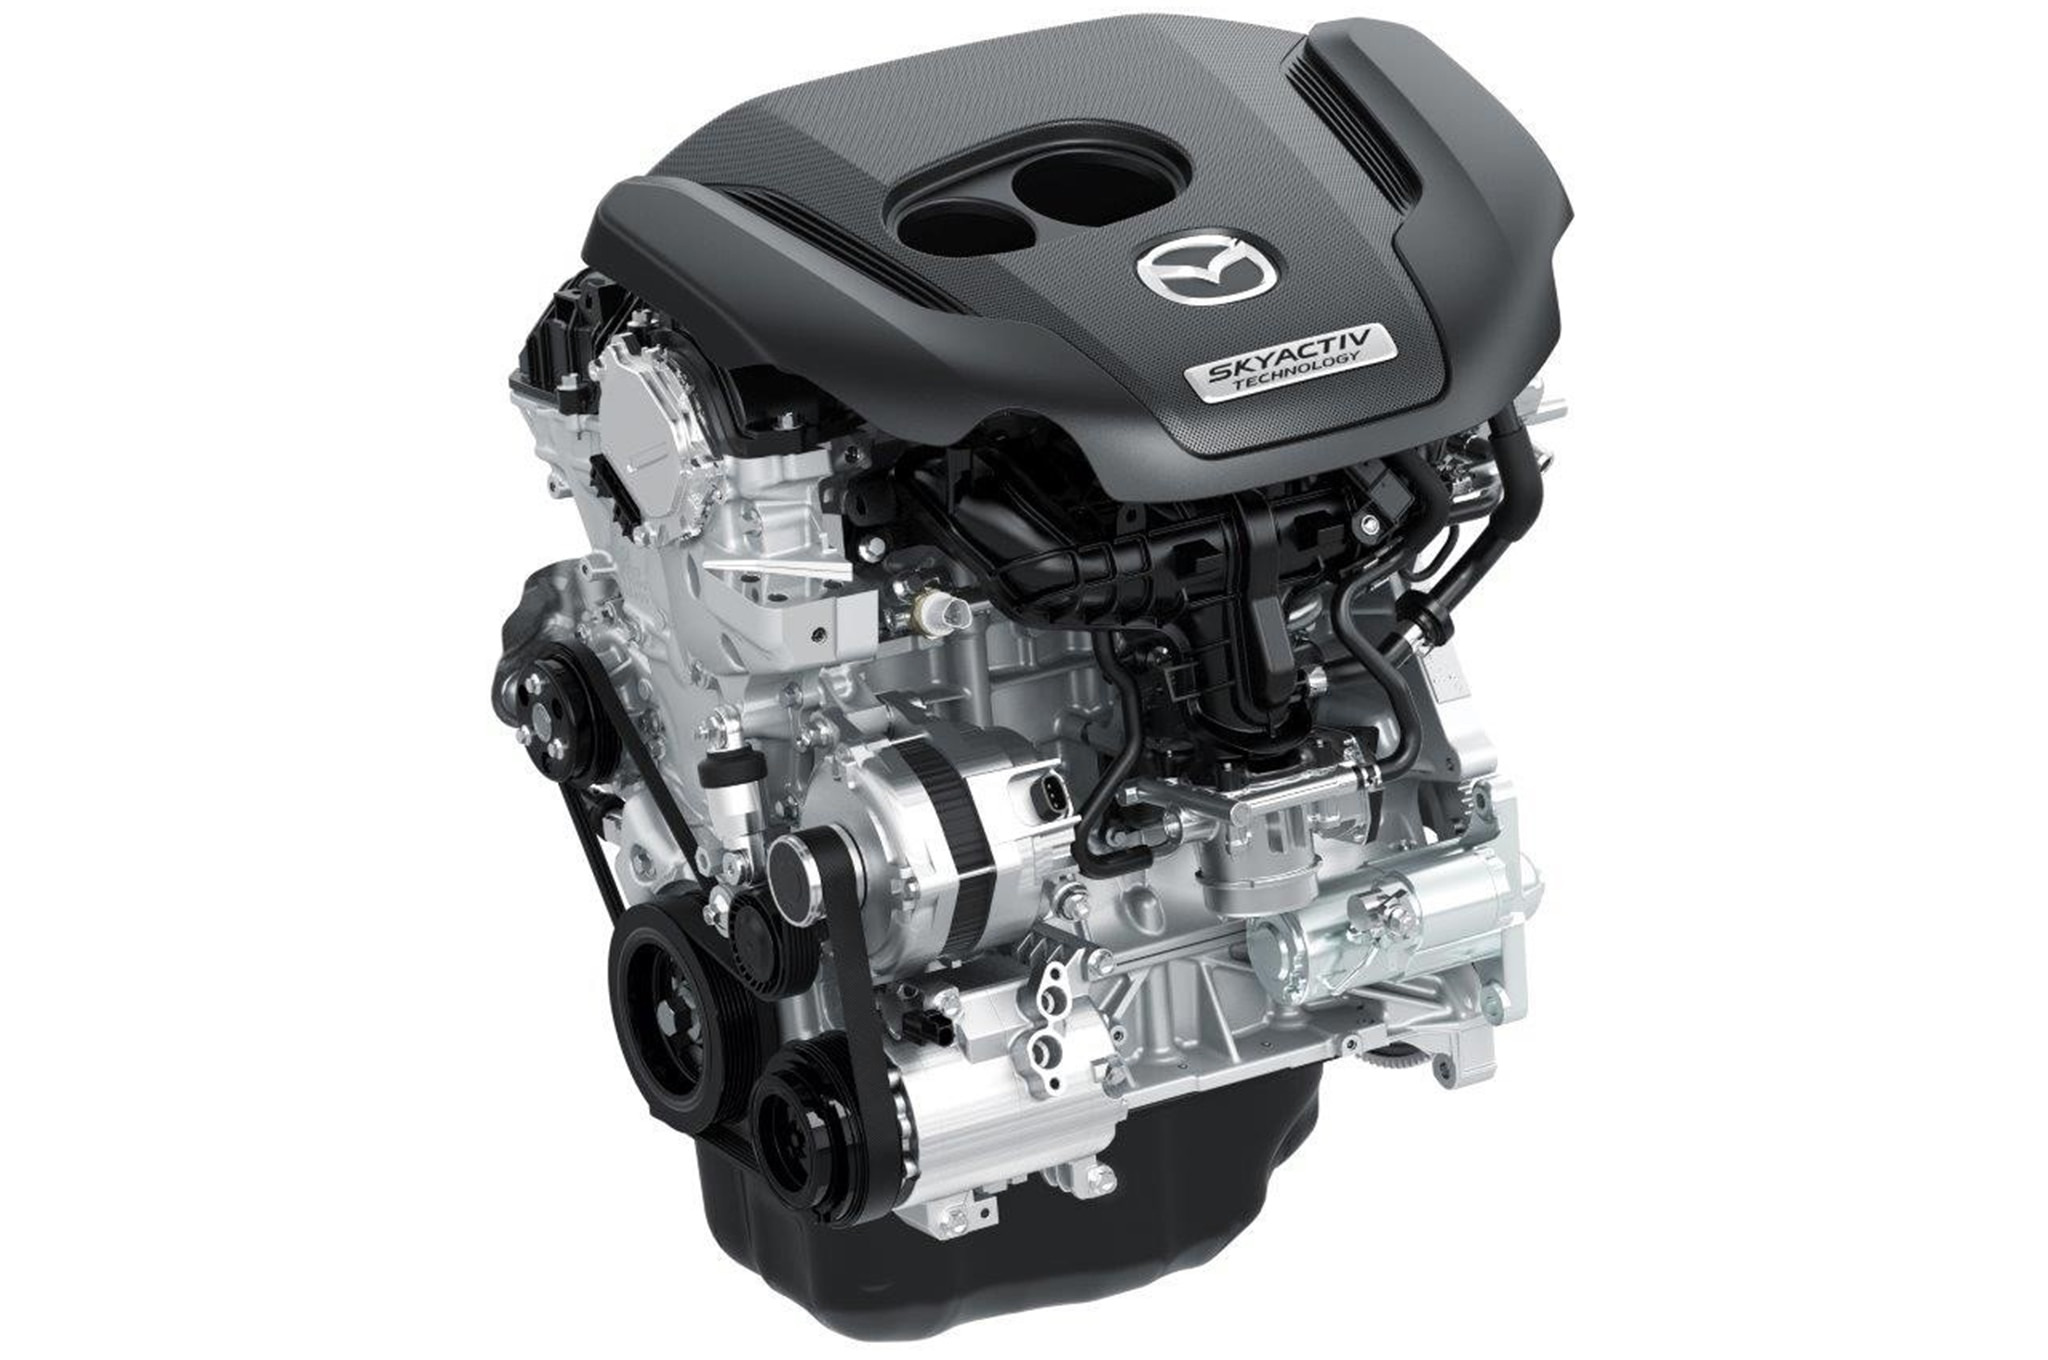 deep dive: inside the mazda skyactiv 2.5t turbo engine